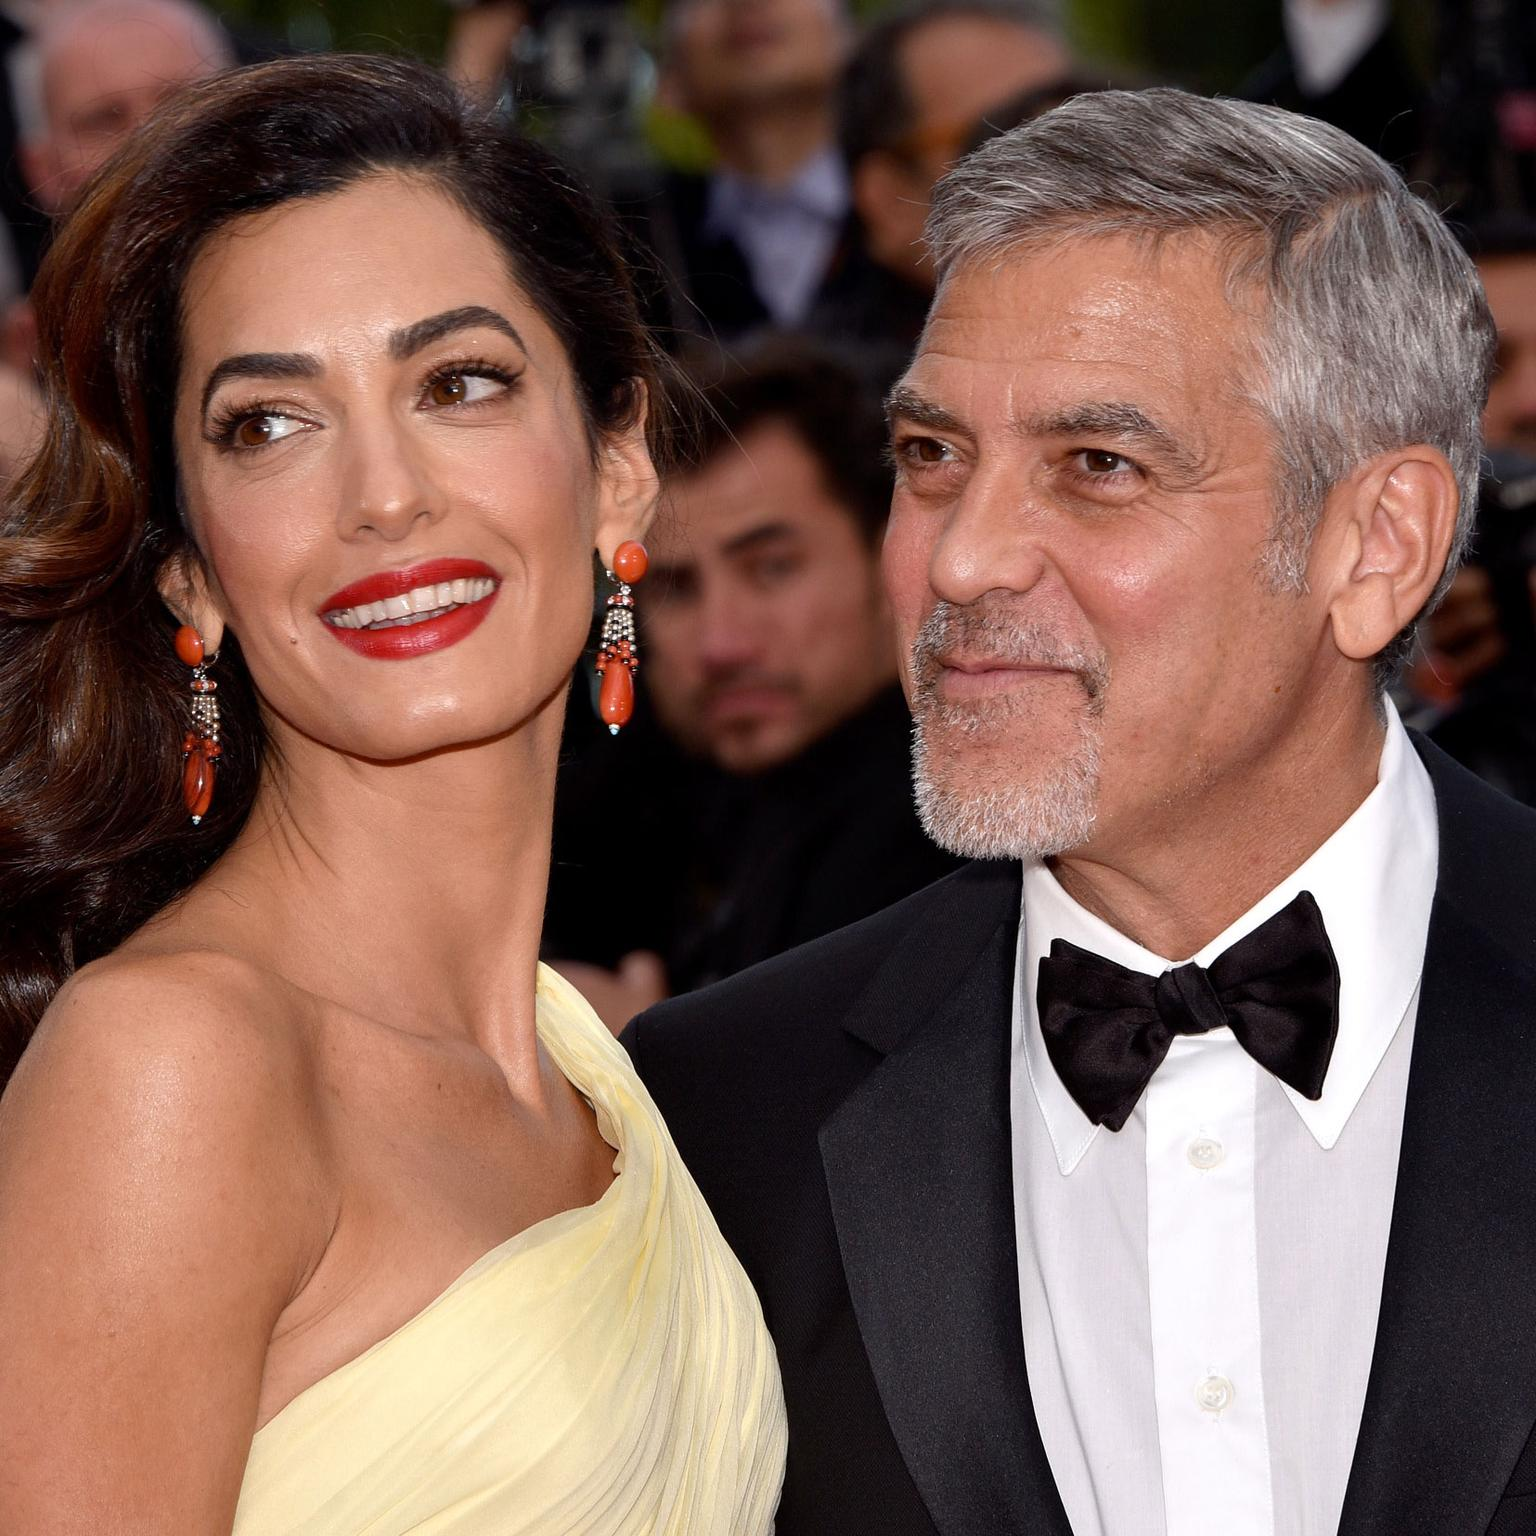 Cannes 2016 Day 2: Amal and George Clooney in Cartier